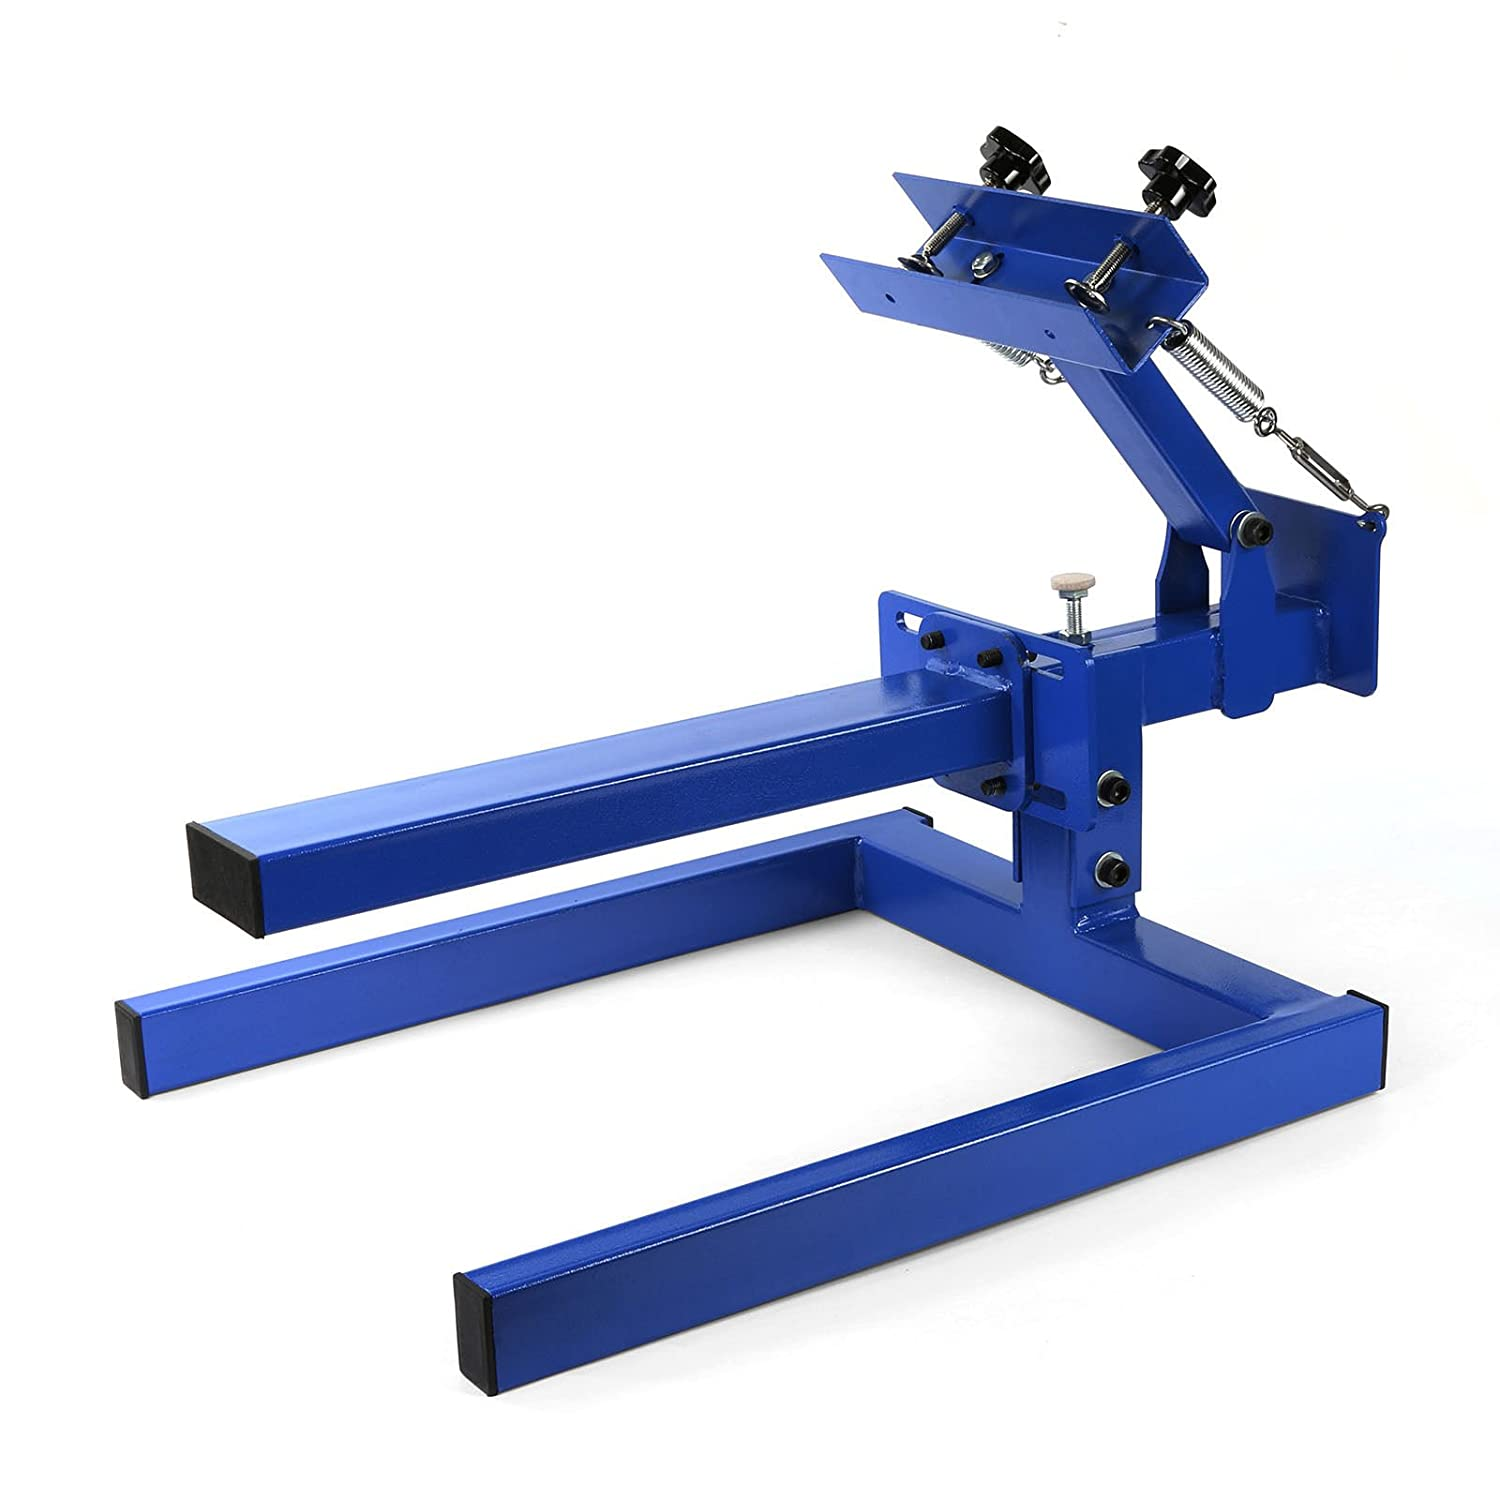 67df69d1 ... SHZOND Screen Printing Press 1 Color 1 Station Silk Screen Machine 21.7  x 17.7 Removable Pallet ...